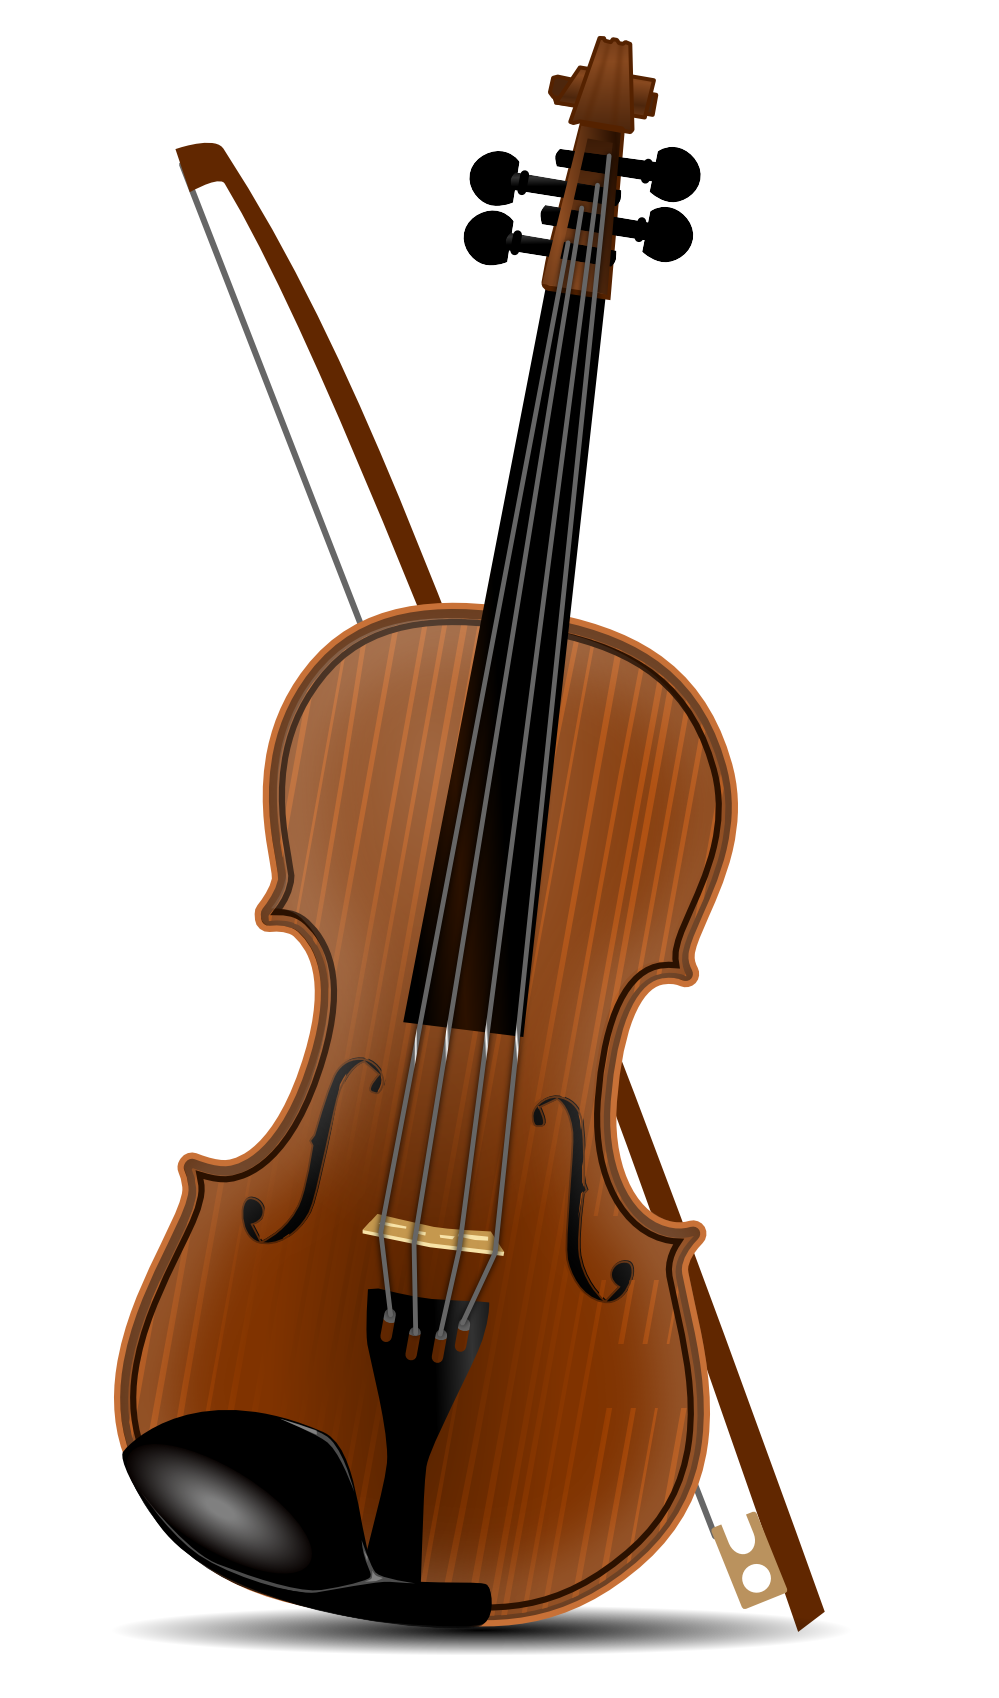 Violin png clipart jpg free stock Download Violin Png Clipart HQ PNG Image | FreePNGImg jpg free stock